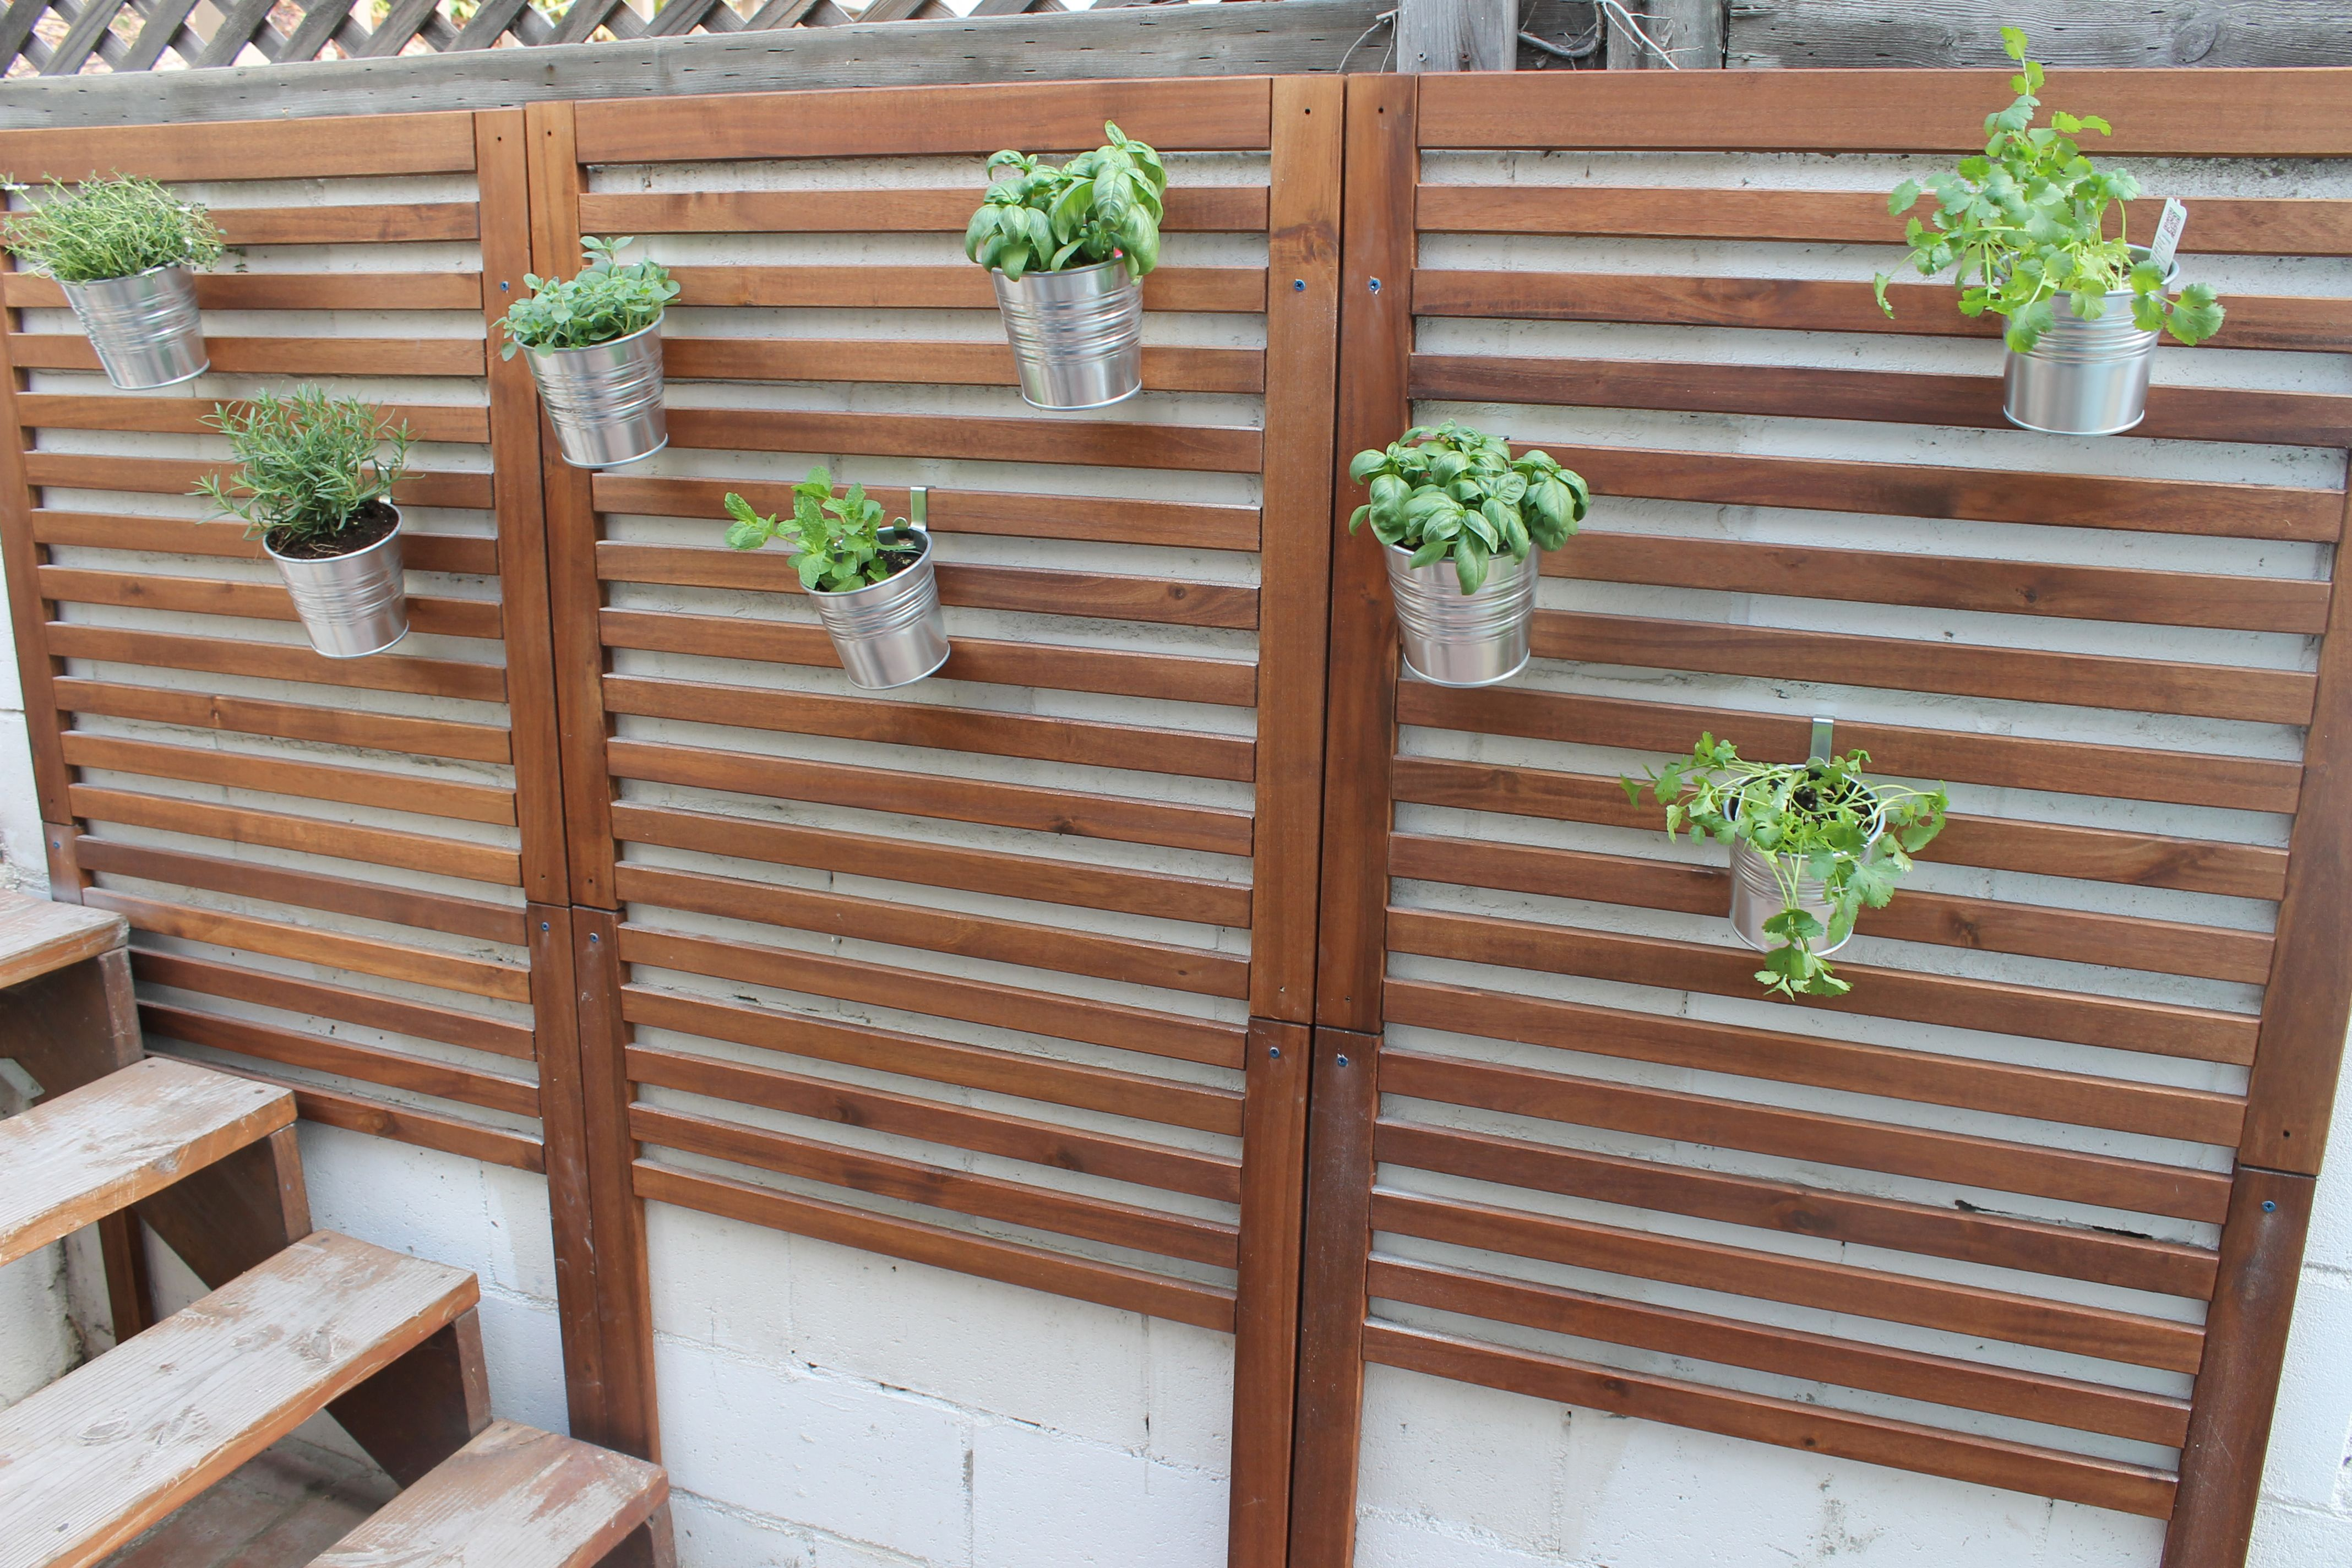 Ikea Applaro And Hanging Pots With Images Ikea Garden Wall